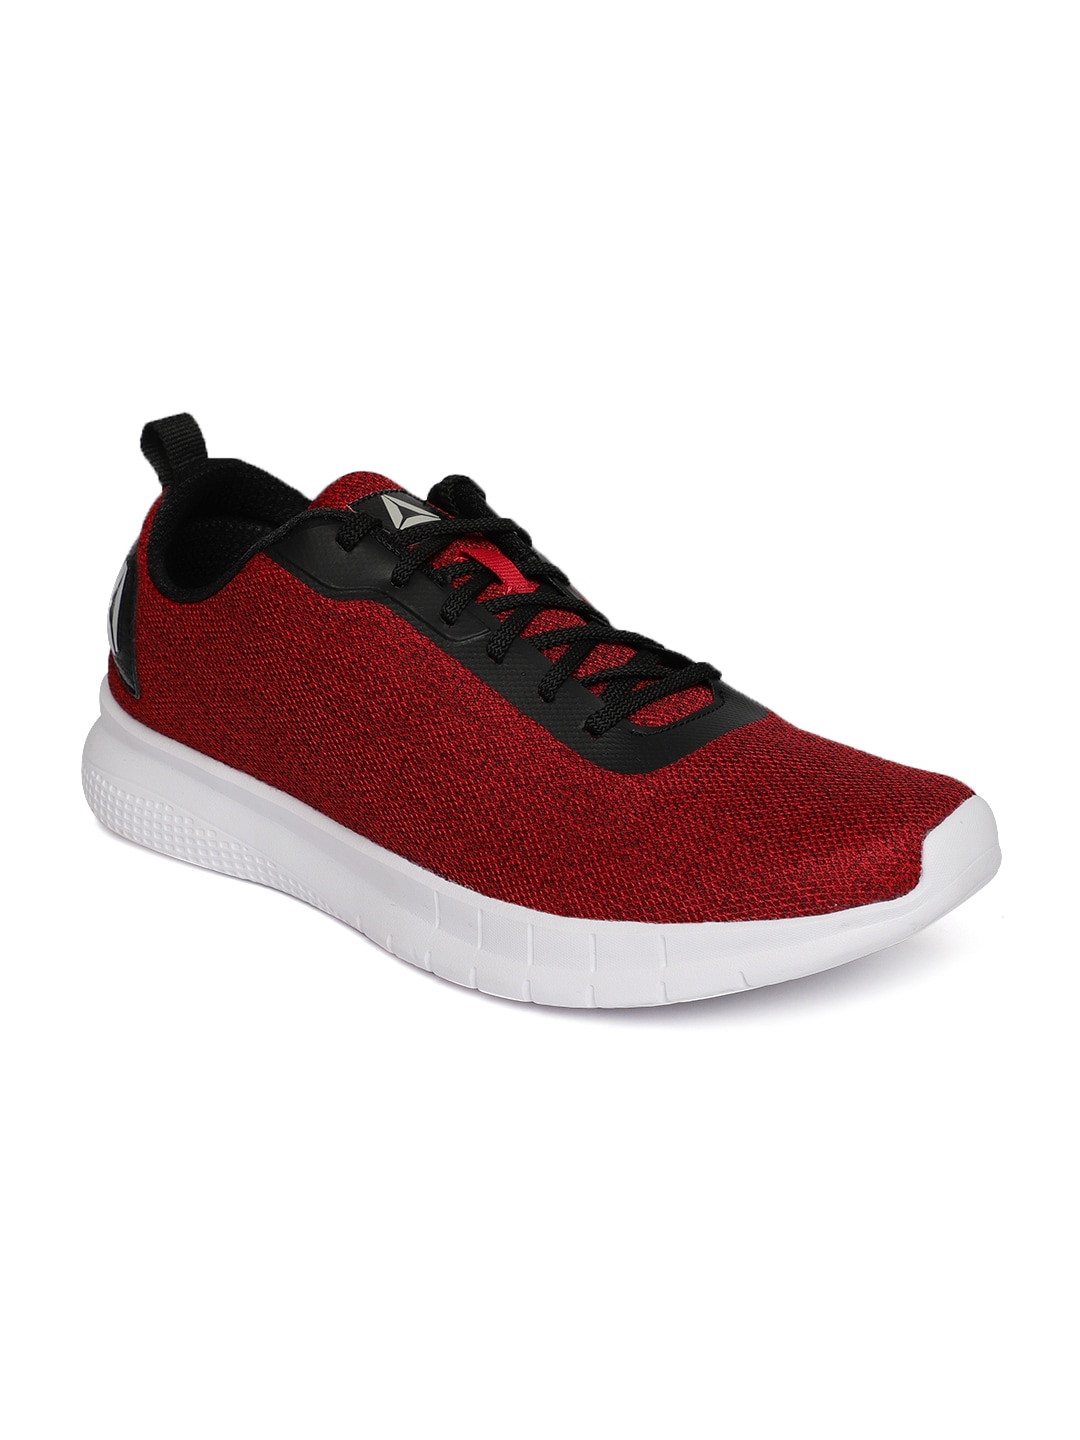 a9f8241376c Reebok Sports Shoes - Buy Reebok Sports Shoes in India